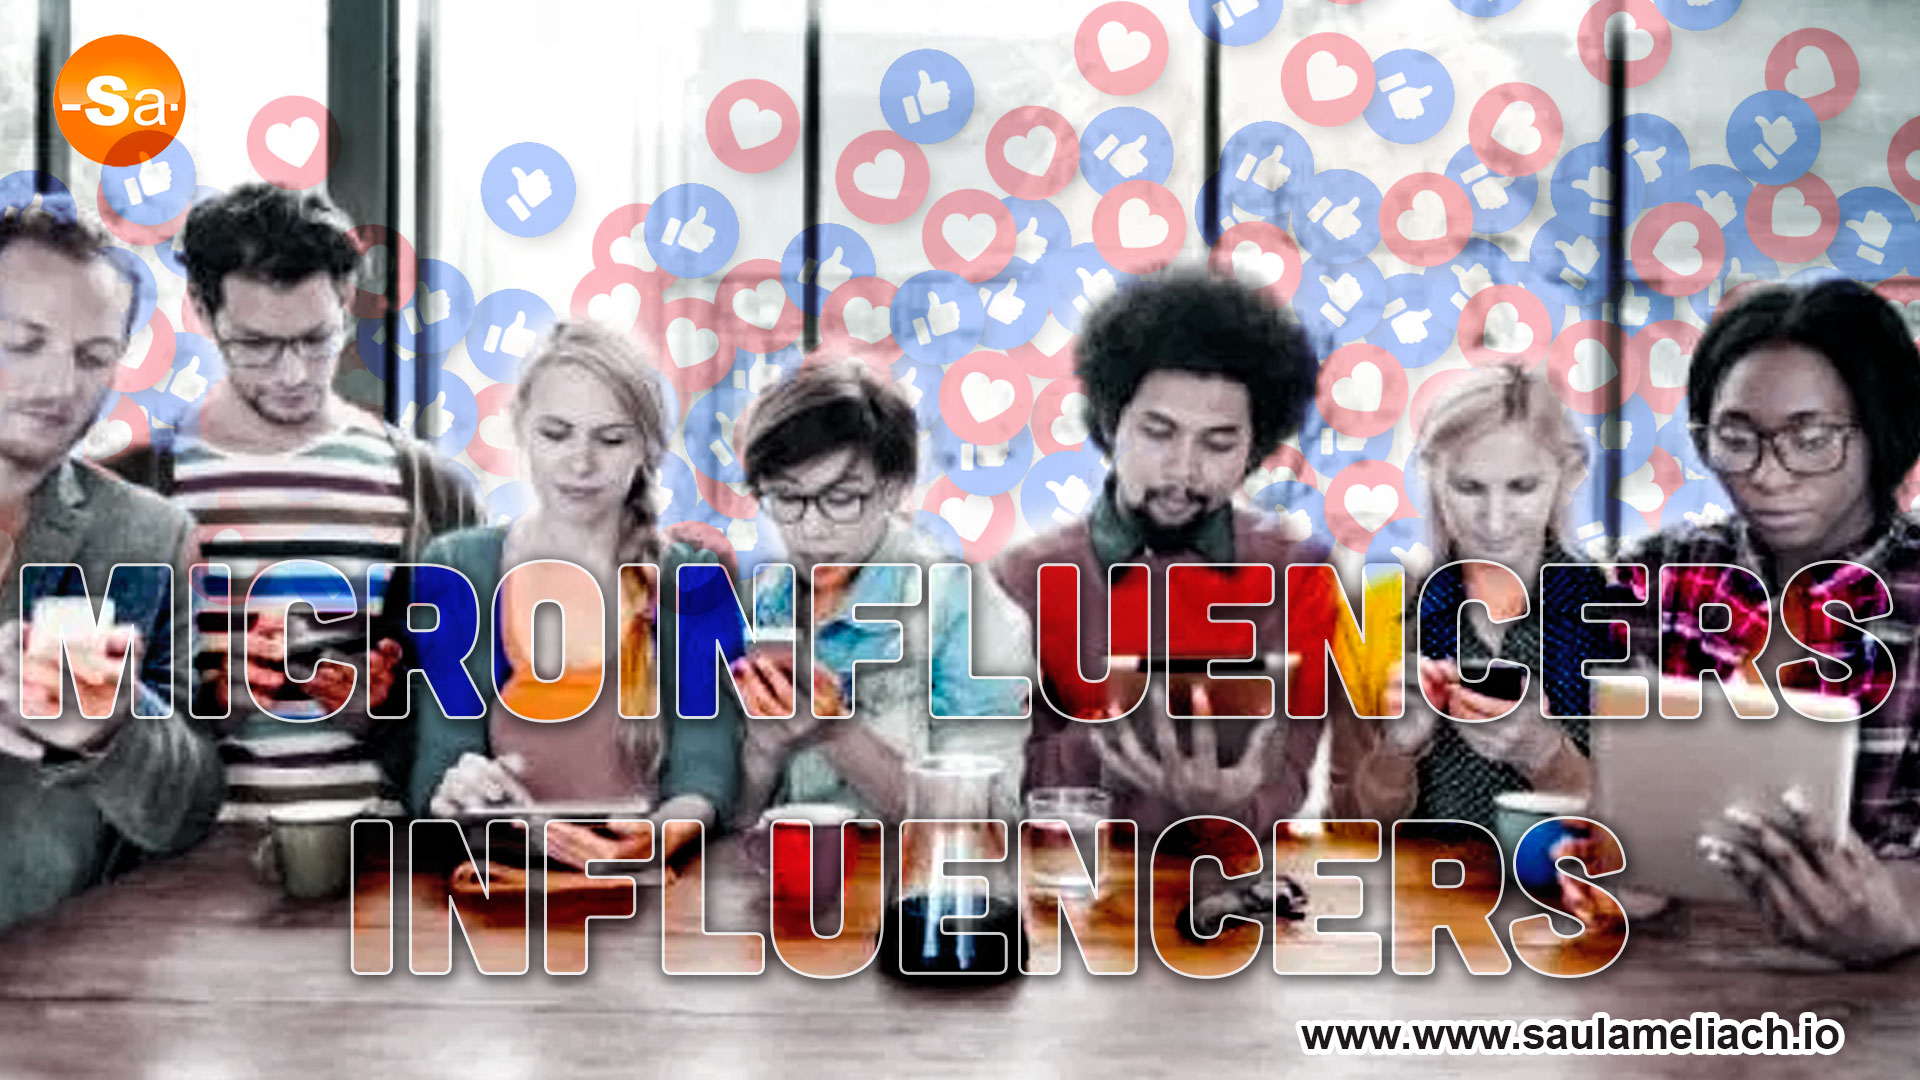 Marketing with microinfluencers and influencers - Saul Ameliach